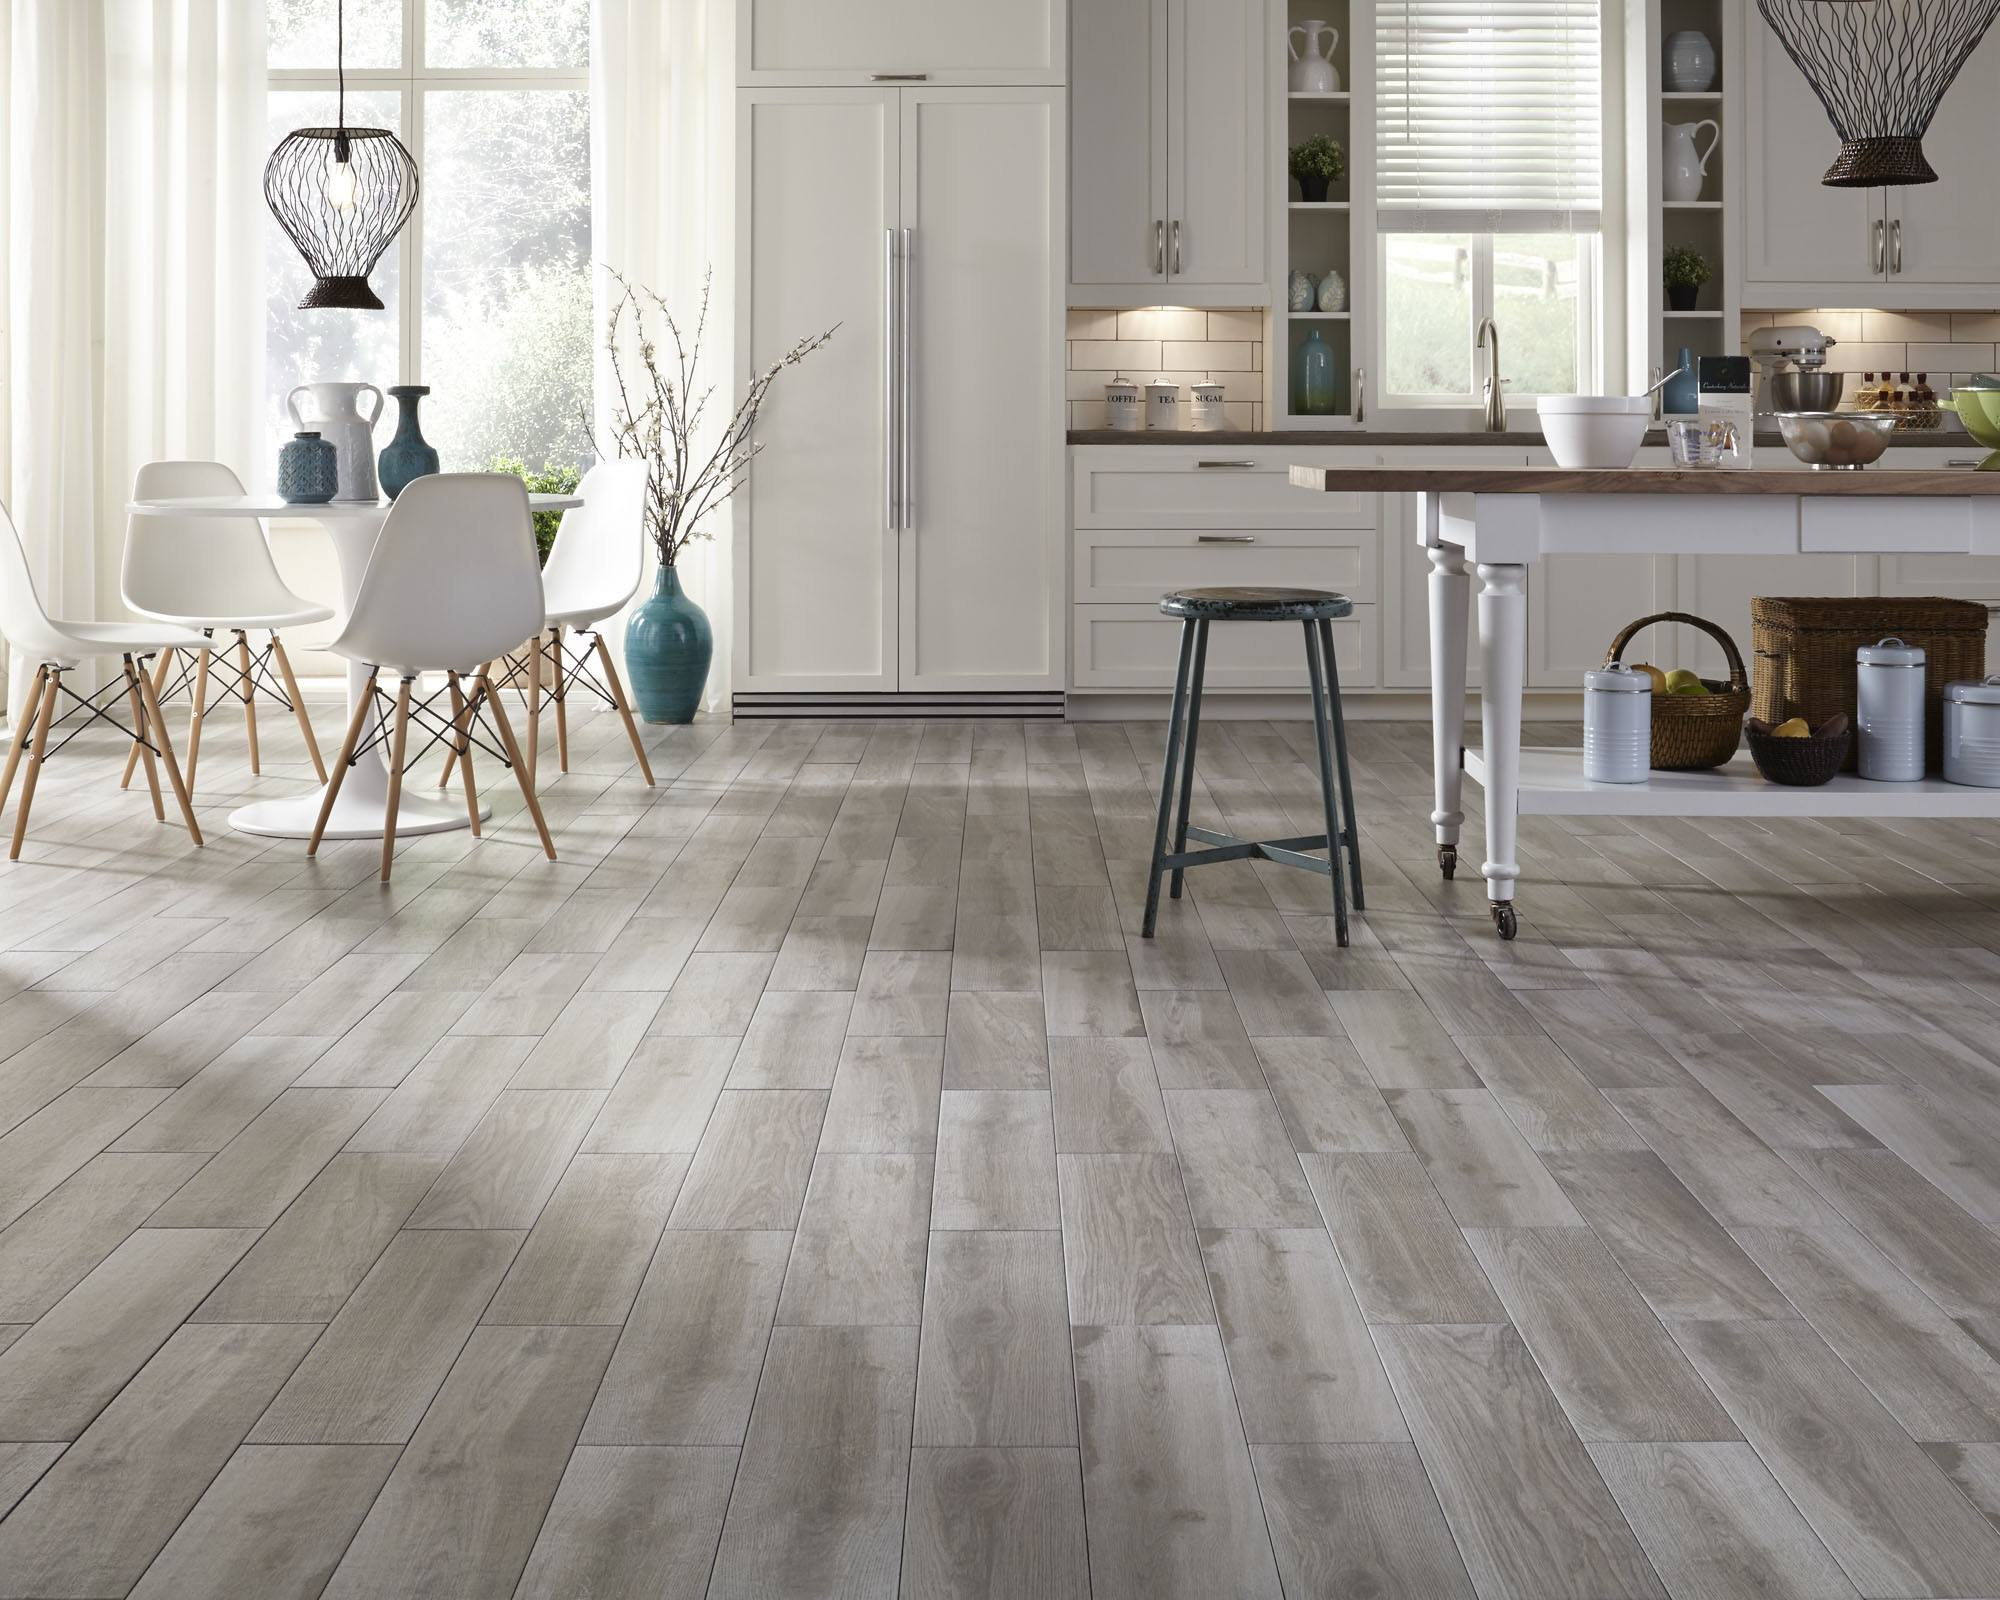 Gray Laminate: Photo Collection of Successfully Decorated Interiors. Open space with bleached oak imitating floor